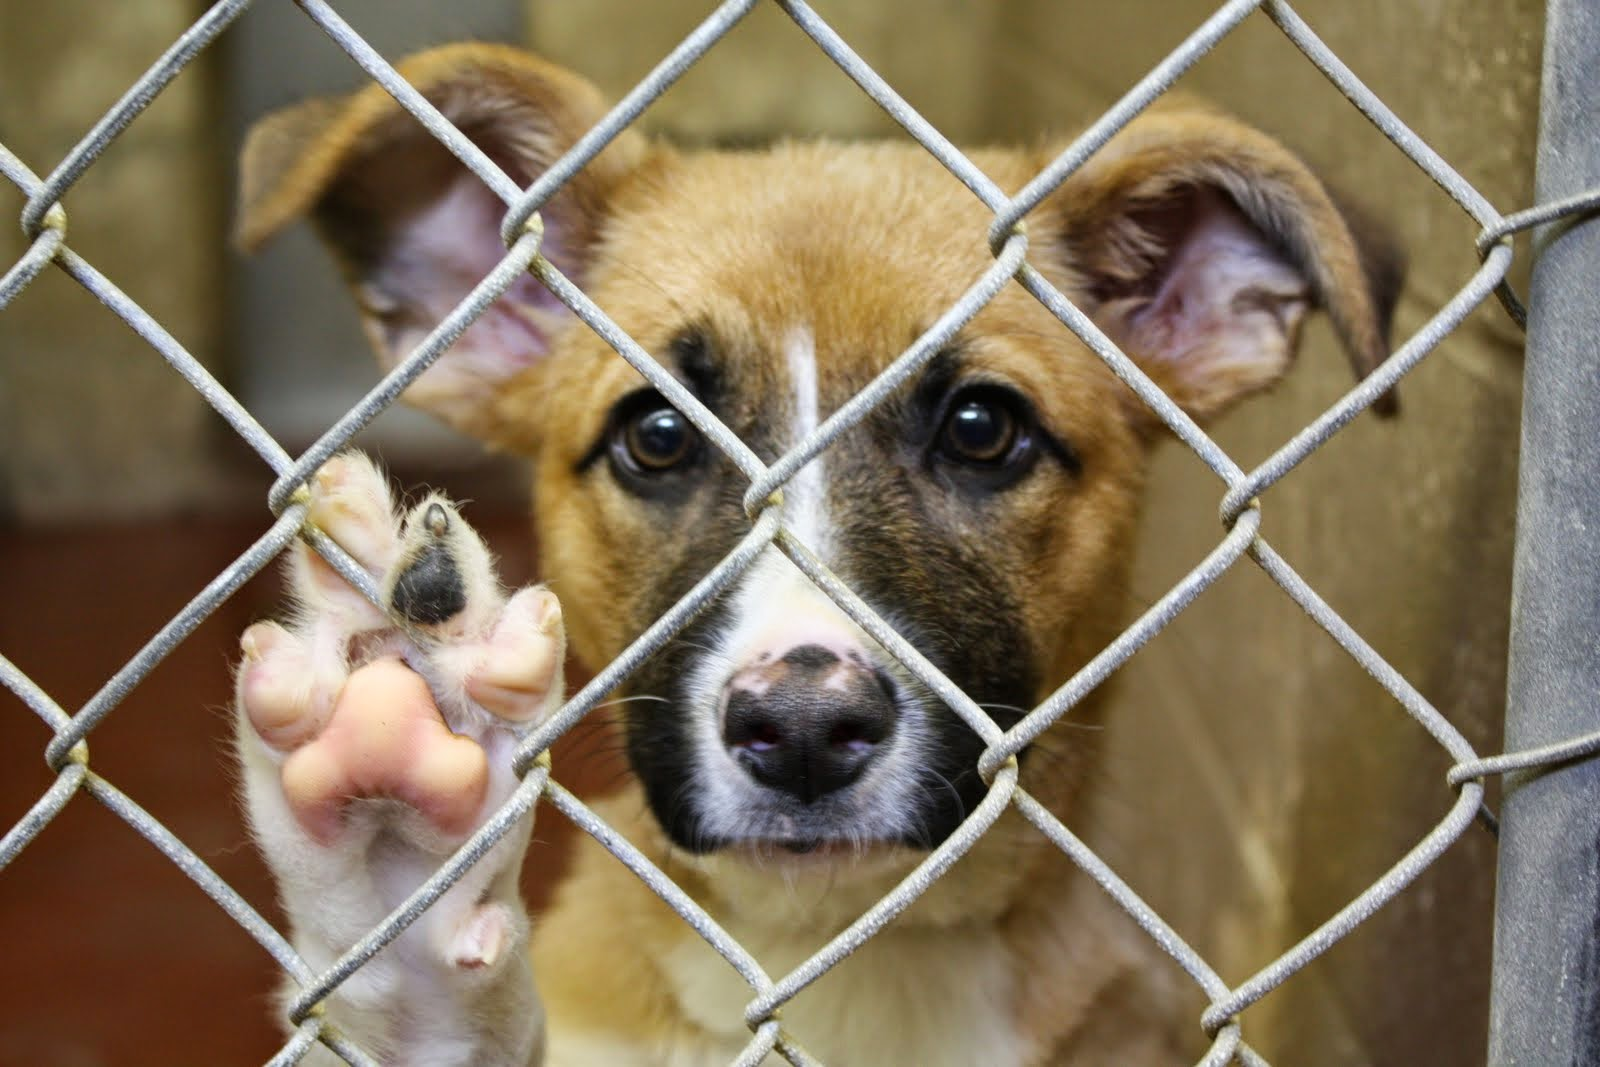 animal cruelty 5 Learn the 10 most common types of animal abuse while dogs are the most common abused animals, cats, kittens and puppies also suffer help animals in need.